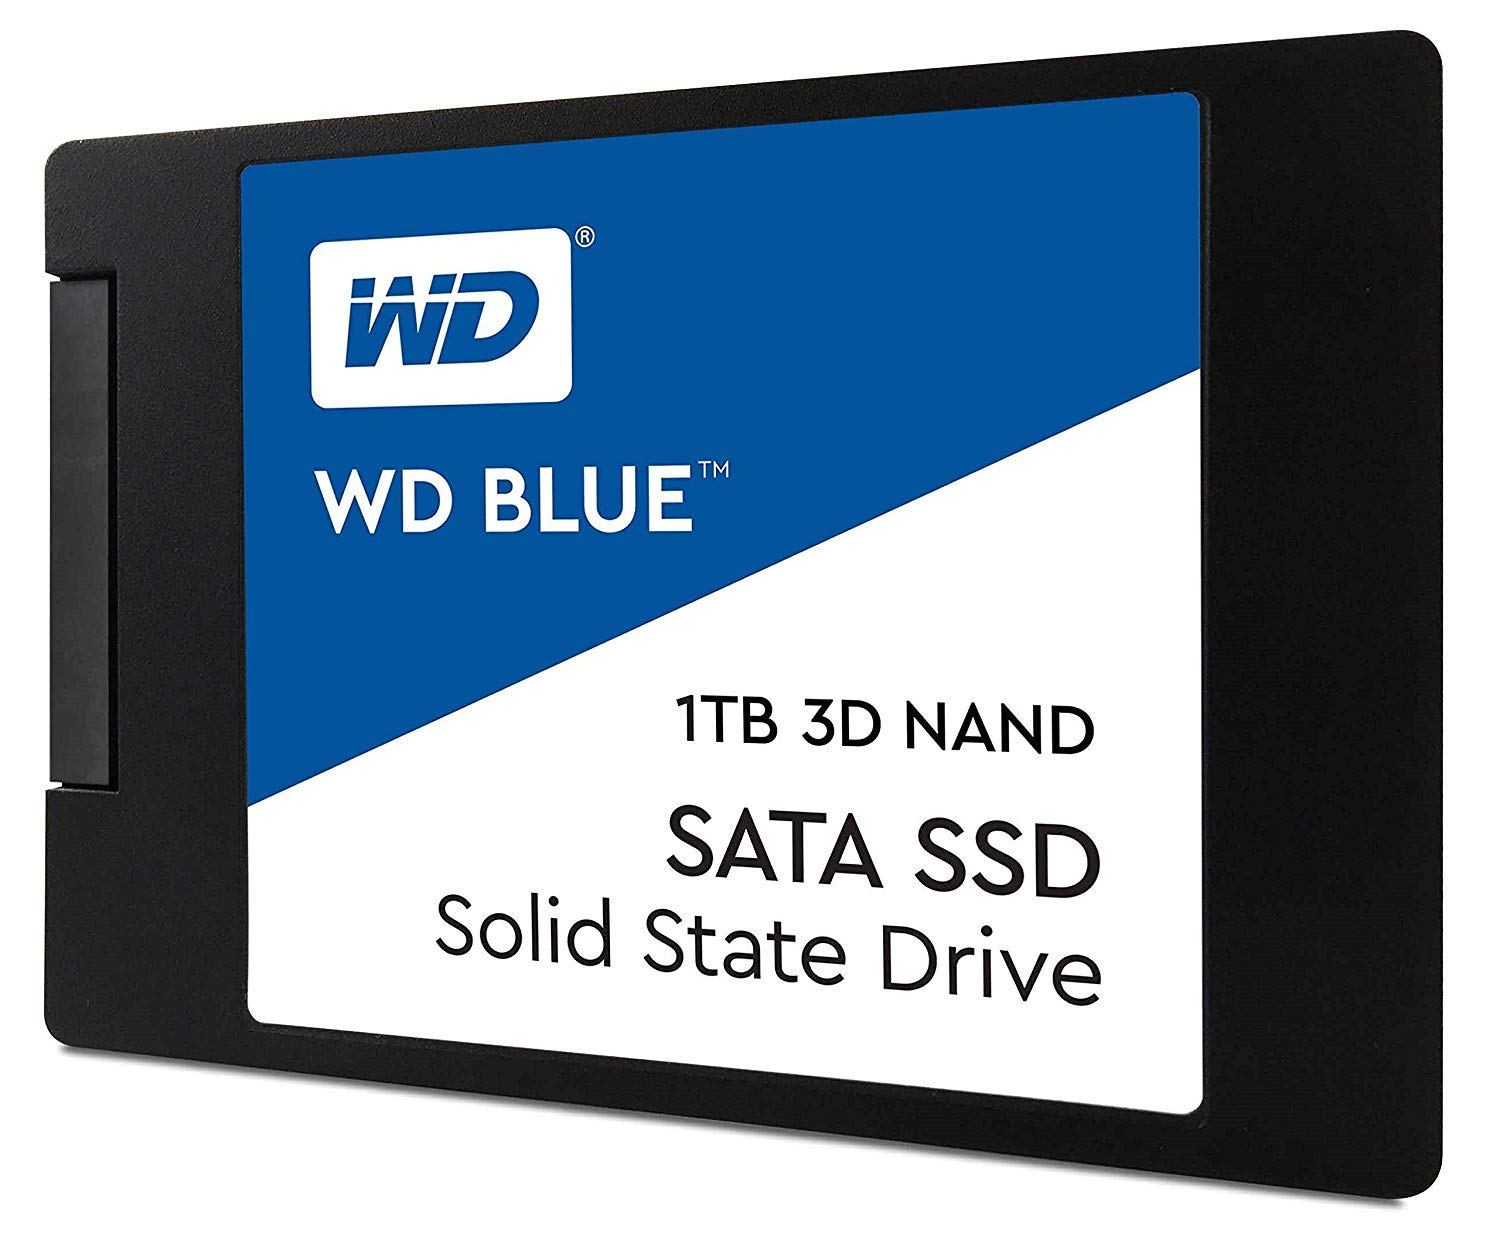 WD 블루 3D NAND 1TB PC SSD Western Digital WD Blue 3D NAND 1TB PC SSD - SATA III 6 Gb/s, 2.5/7mm - WDS100T2B0A